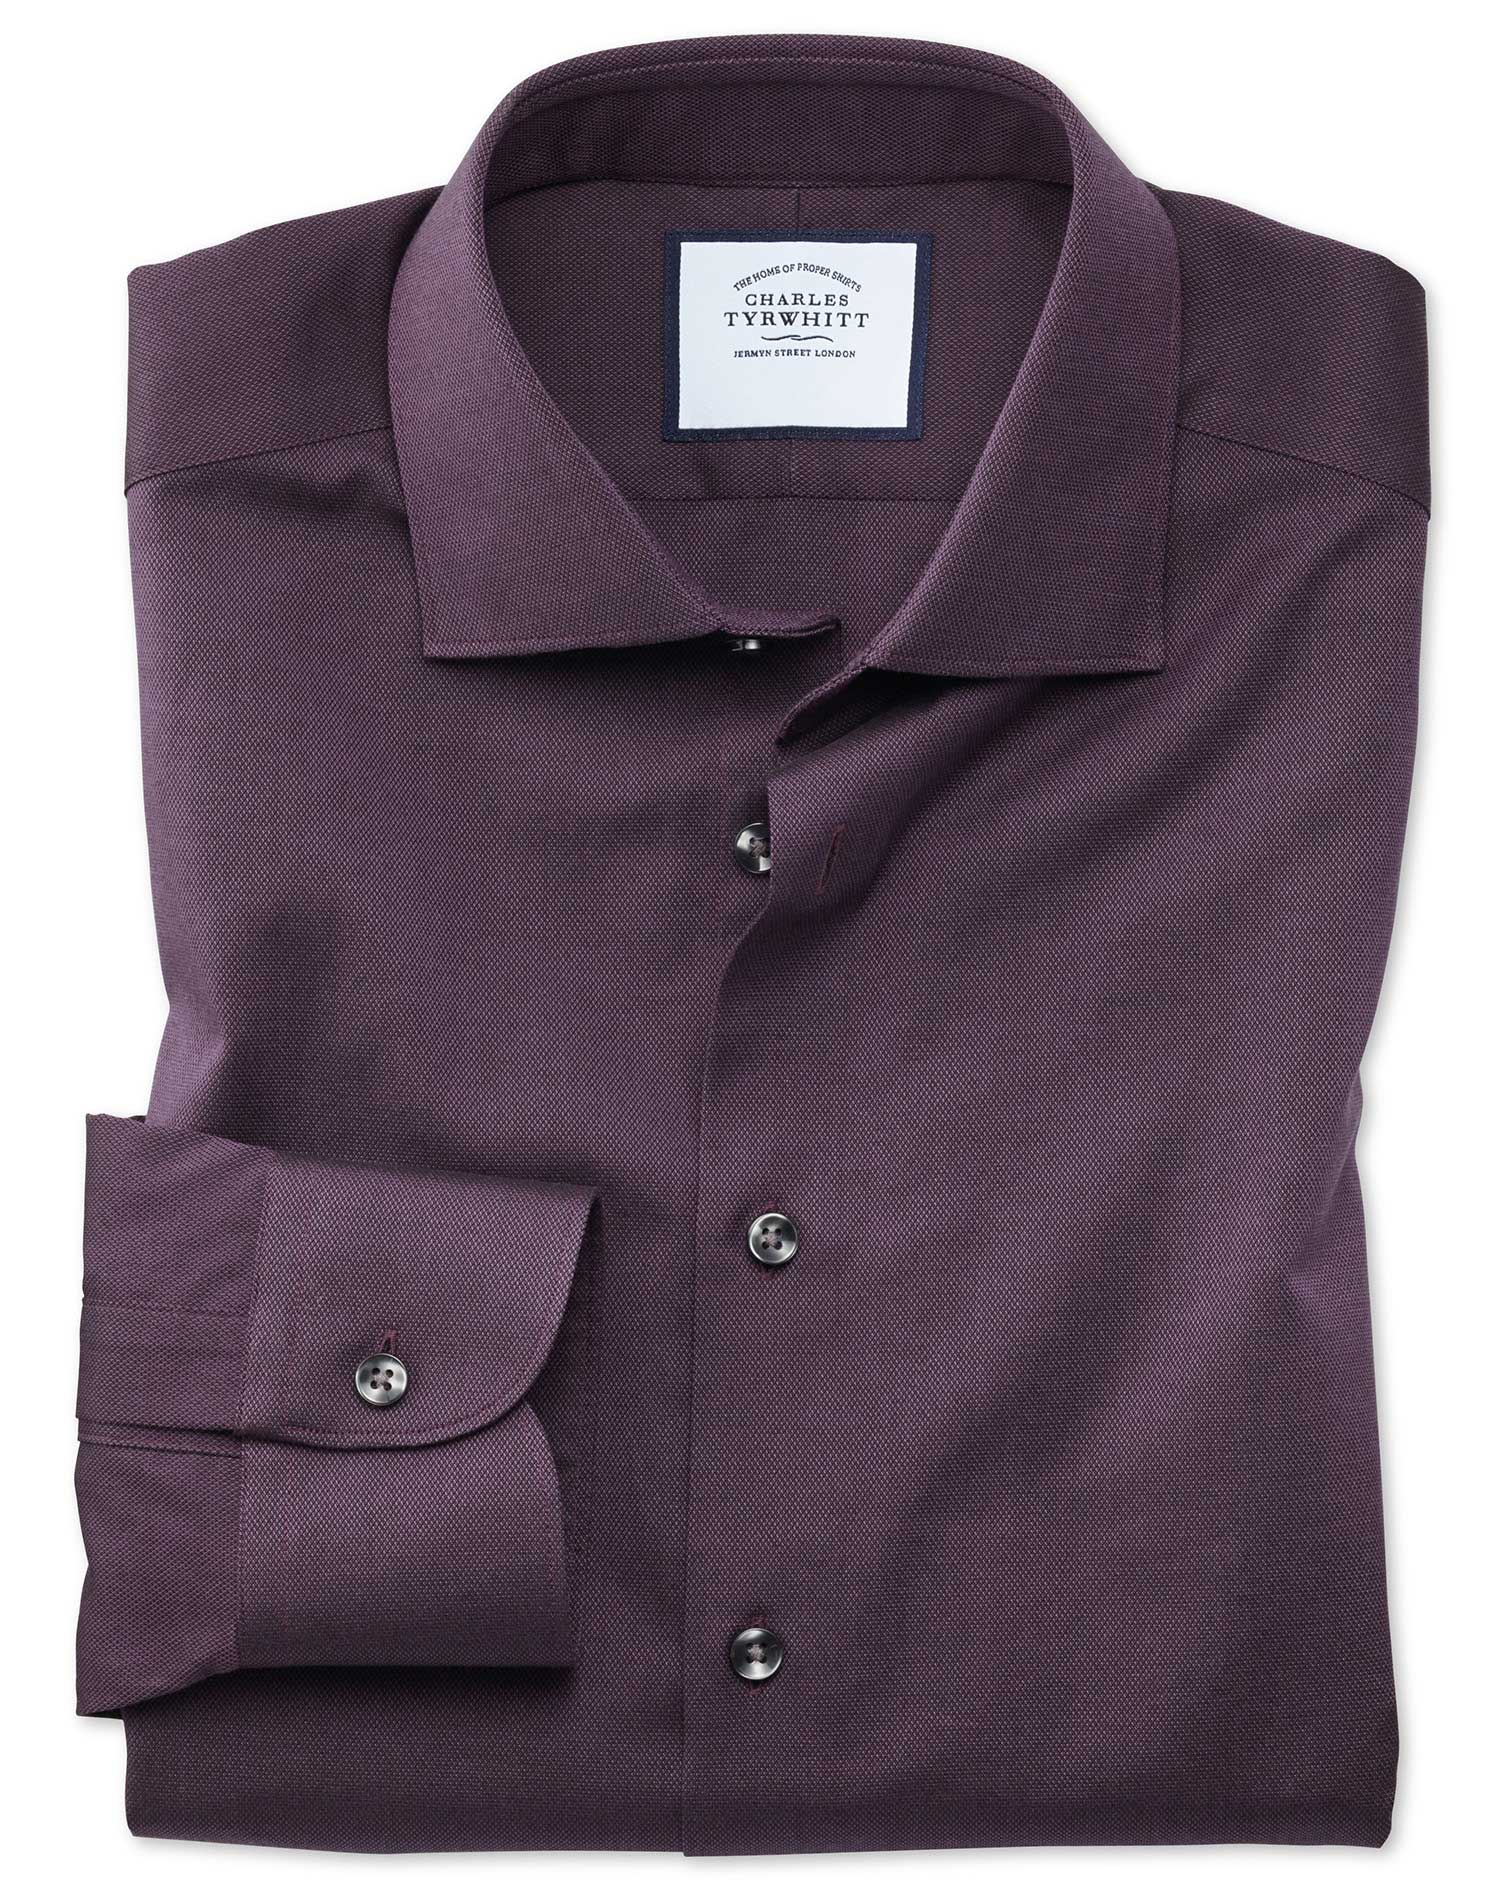 Classic Fit Business Casual Berry Royal Oxford Cotton Formal Shirt Single Cuff Size 17.5/34 by Charles Tyrwhitt from Charles Tyrwhitt